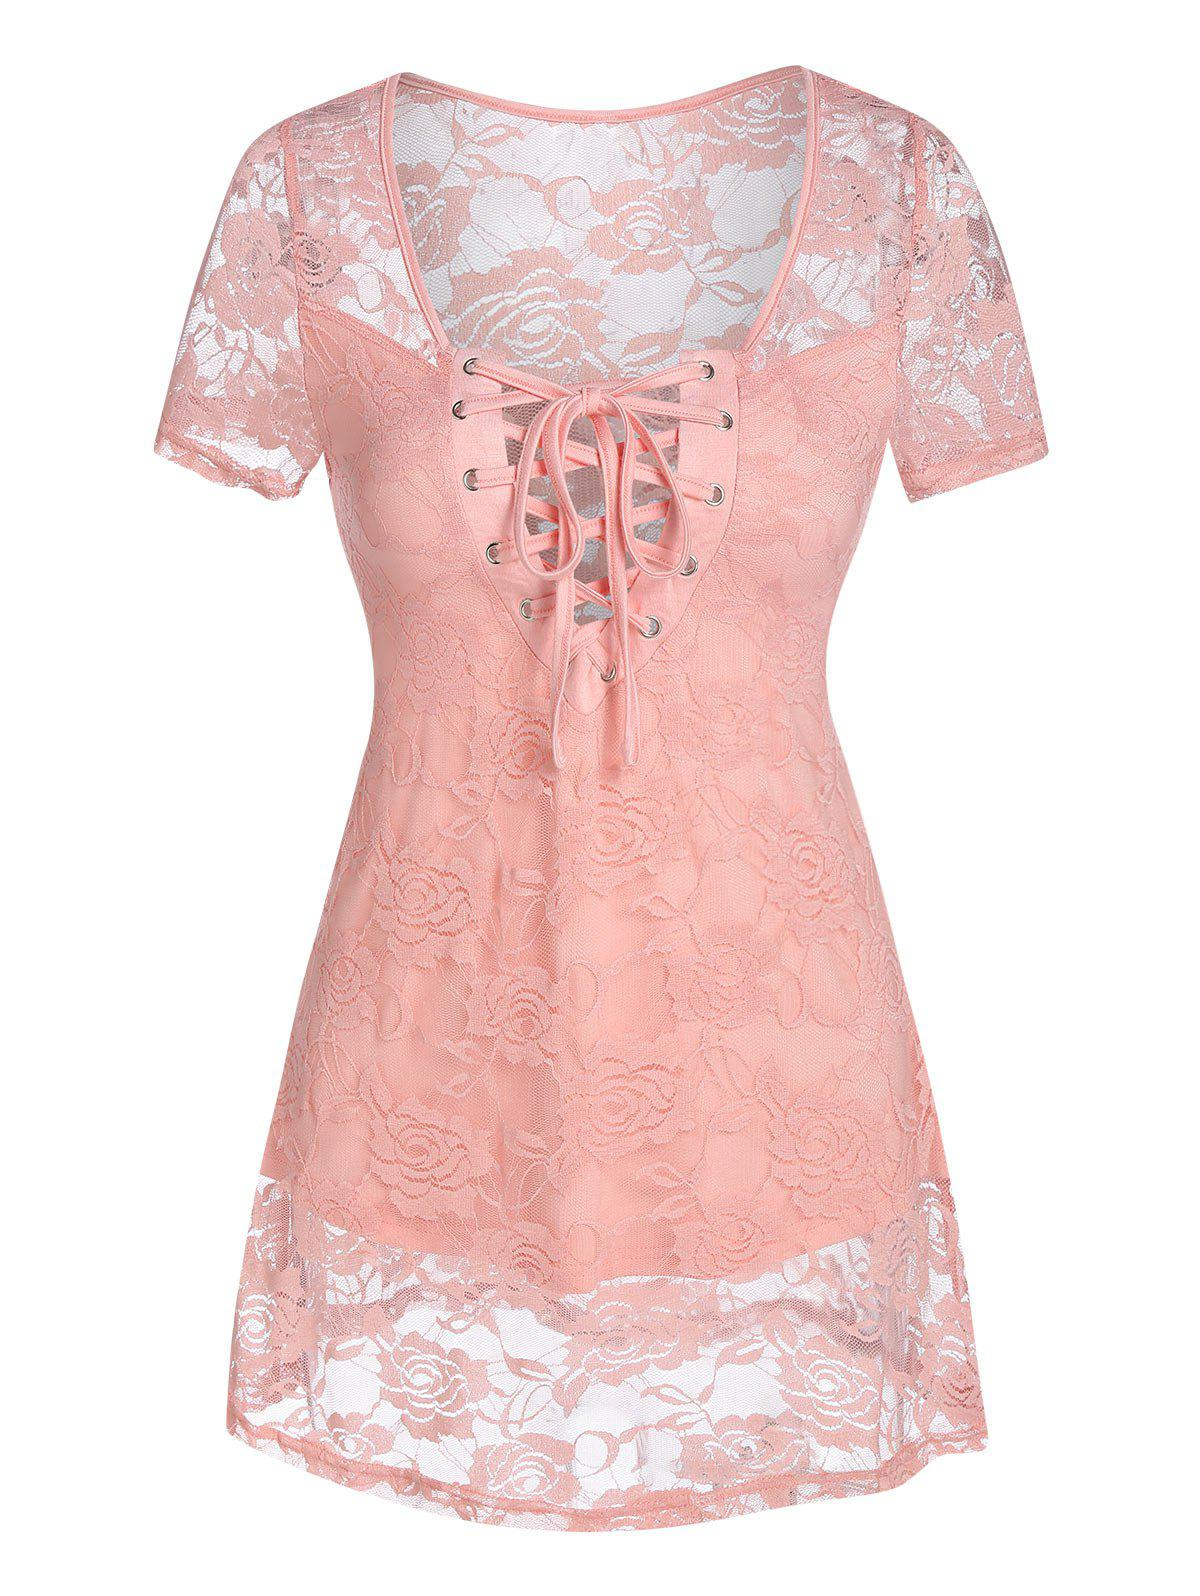 Curved Hem Lace-up Flower Lace Top - PIG PINK S